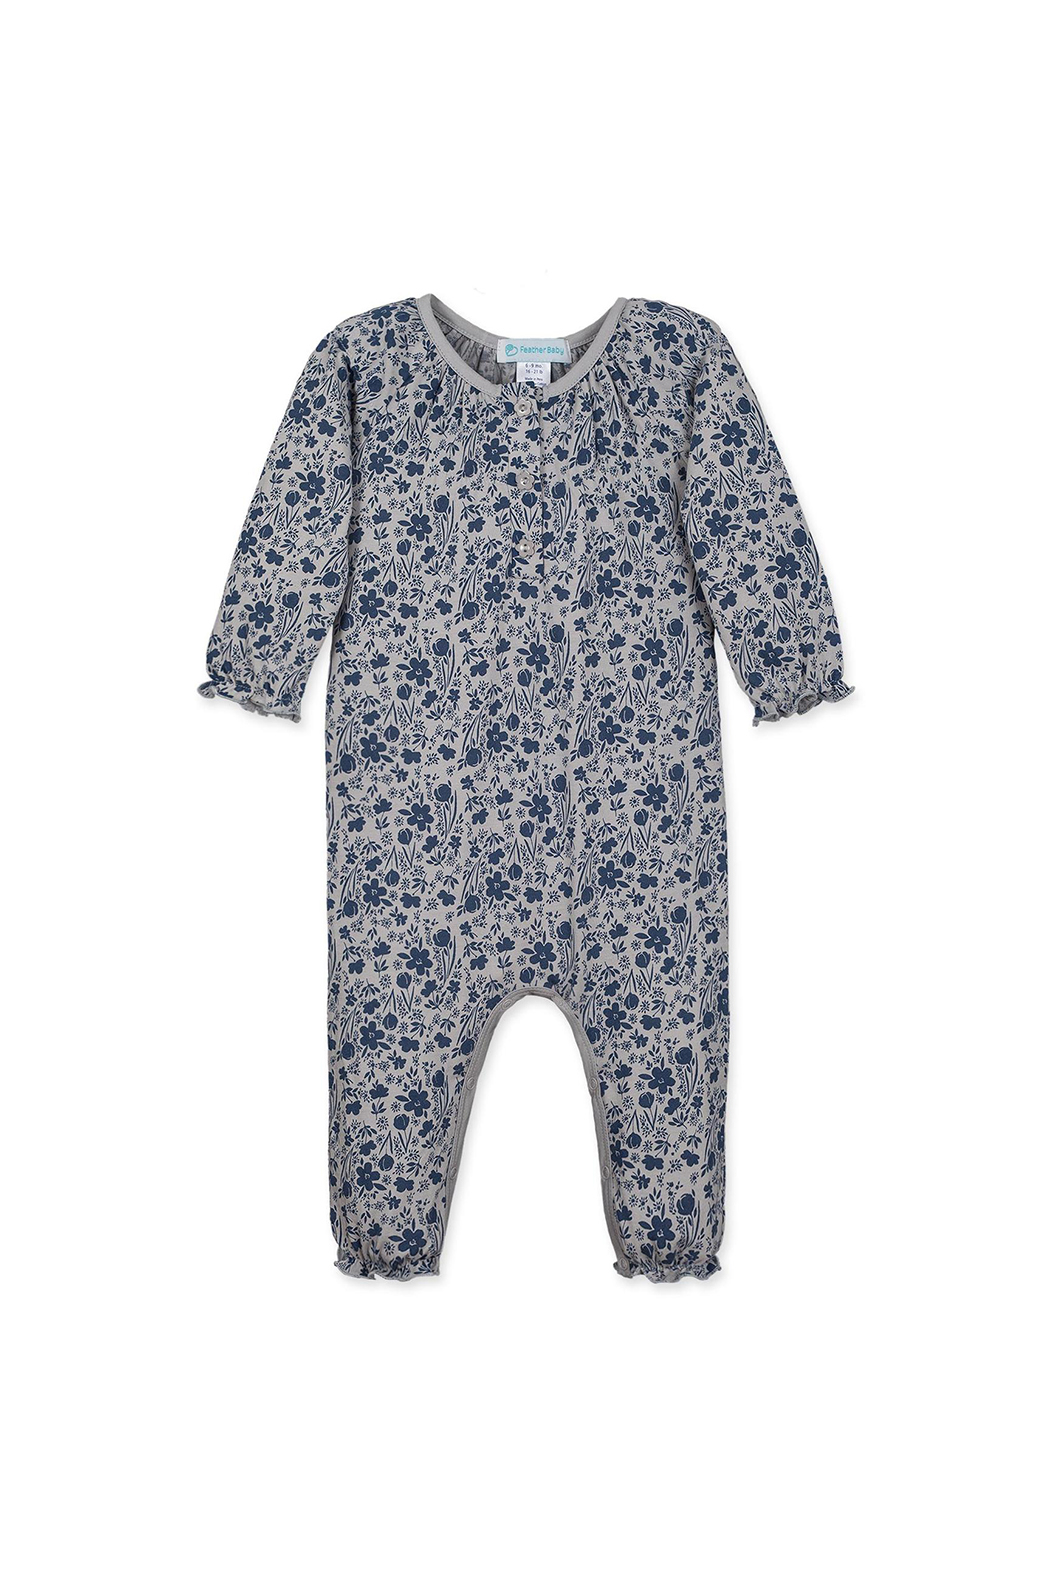 Feather Baby Isabella Ruched Floral Romper - Main Image